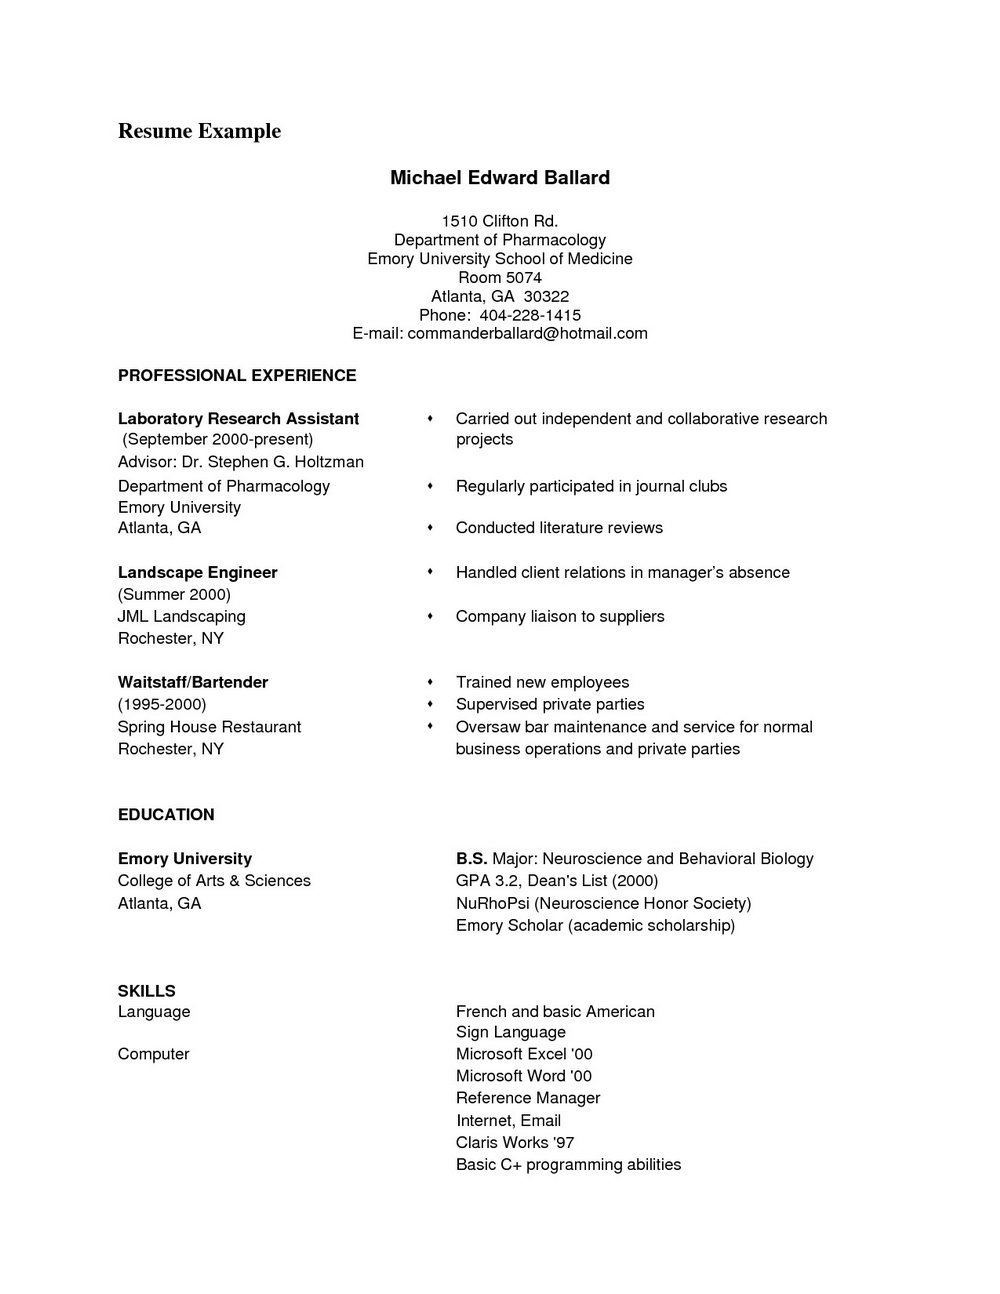 Monster Resume Writing Services